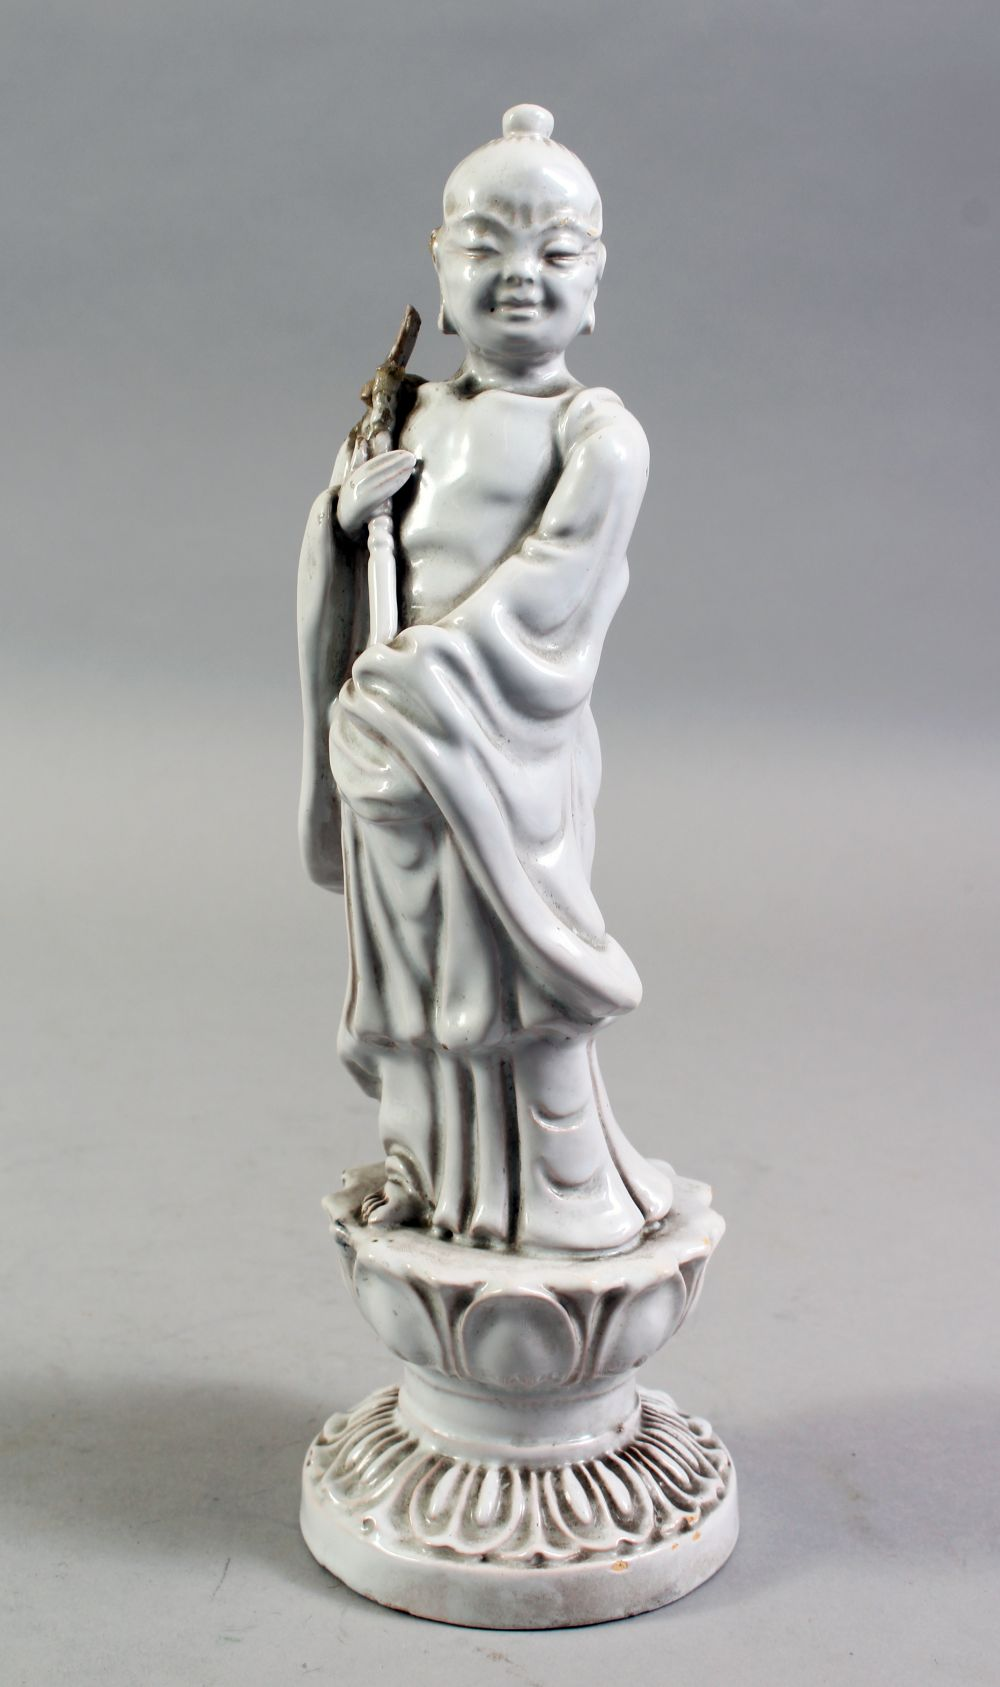 A CHINESE BLANC DE CHINE PORCELAIN FIGURE OF A BOY, standing holding a scepter, on a lotus base,